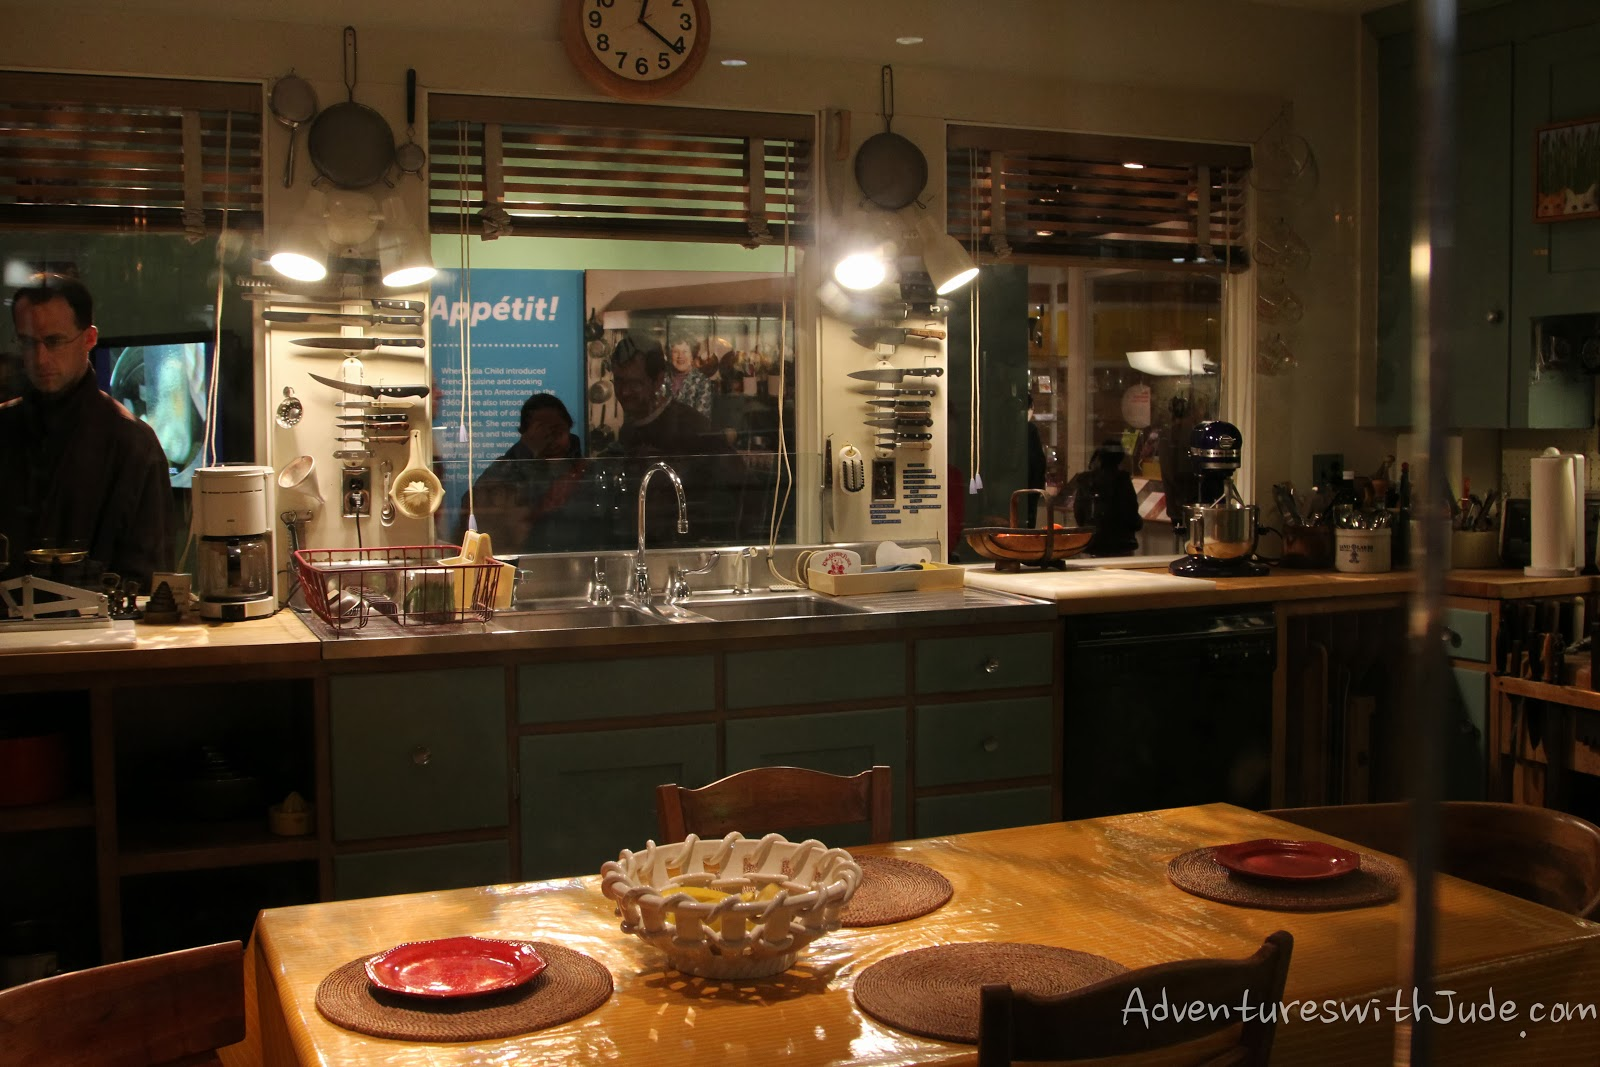 Julia Child's Kitchen recreated at the Smithsonian/American History